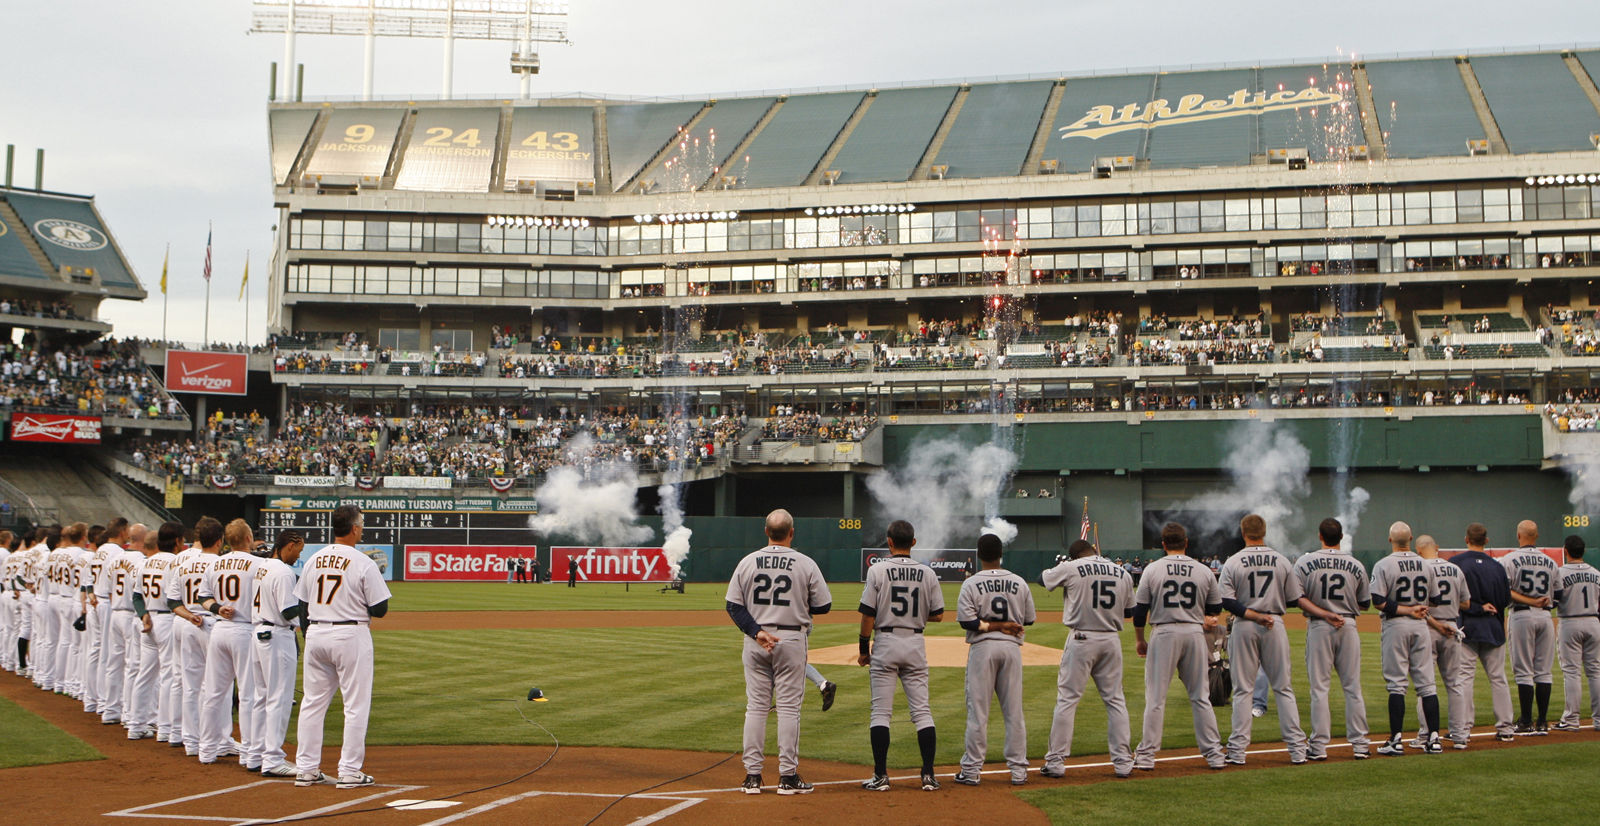 The Oakland Coliseum, seen here on Opening Day in 2011, is home to the Oakland A's and has a number of problems lately, including raw sewage flooding the dugouts. It still ranks at No. 12 on the list with an average cost of $73.67. File. (AP Photo/Ben Margot)